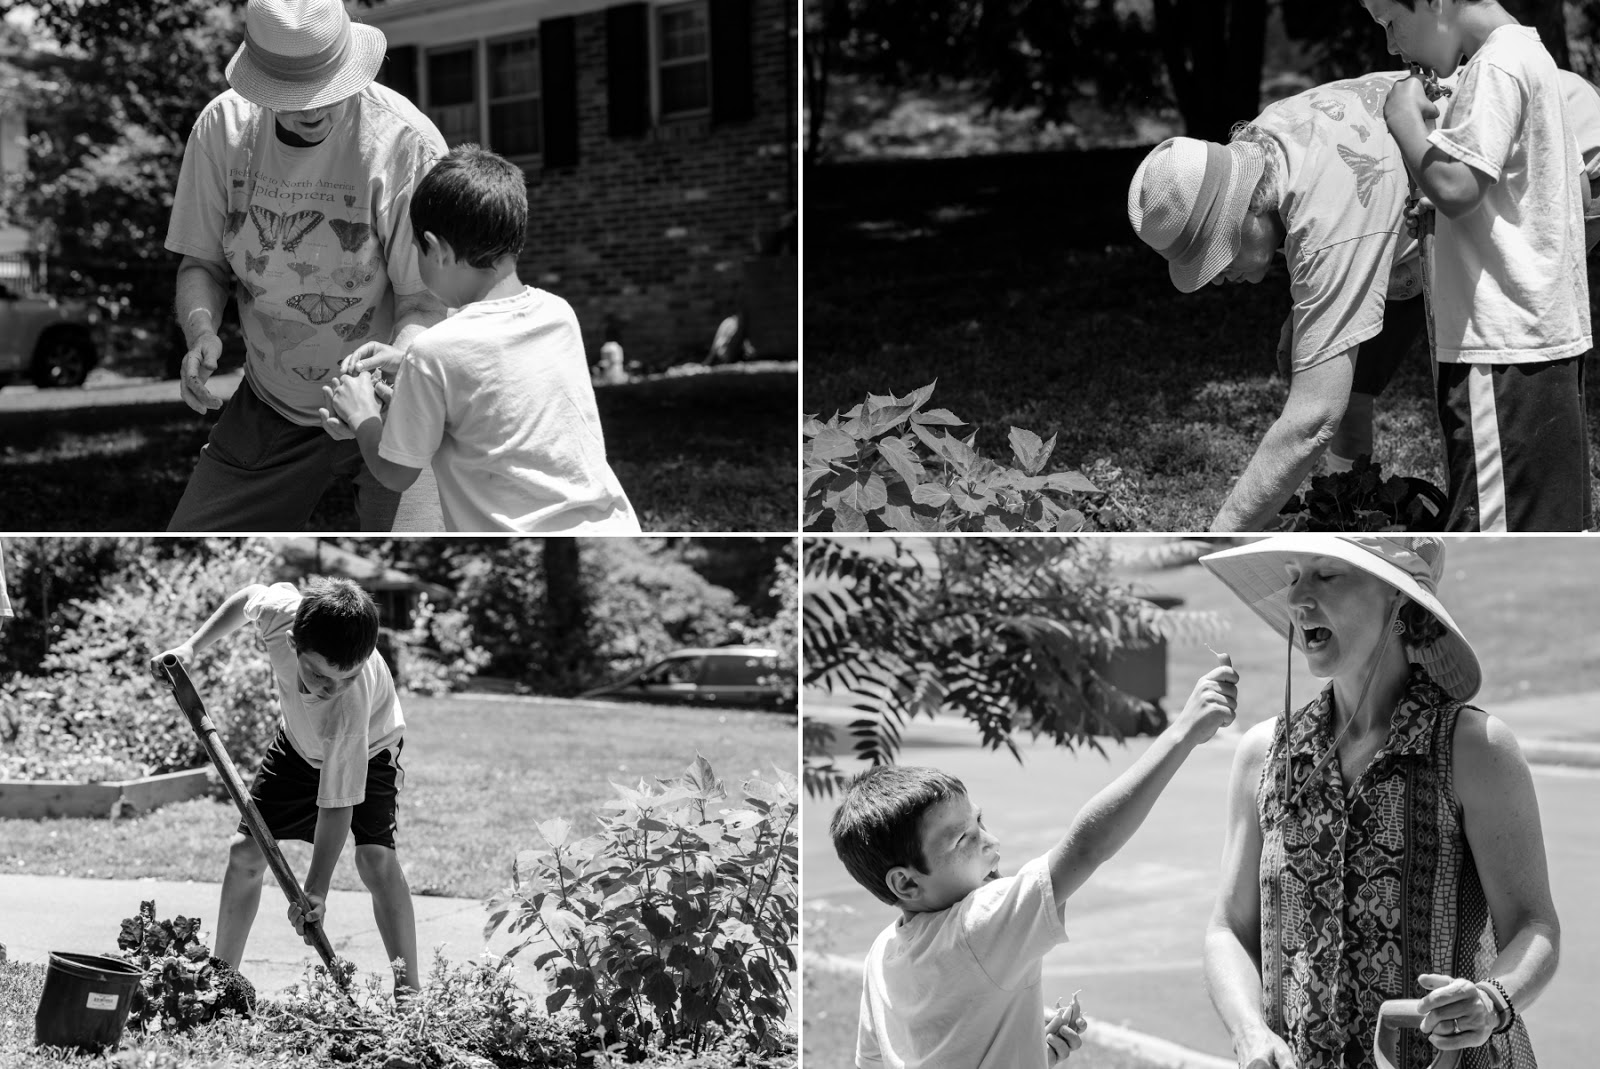 Gardening with Mom and Grandma Family Documentary Photography © Diana Sherblom